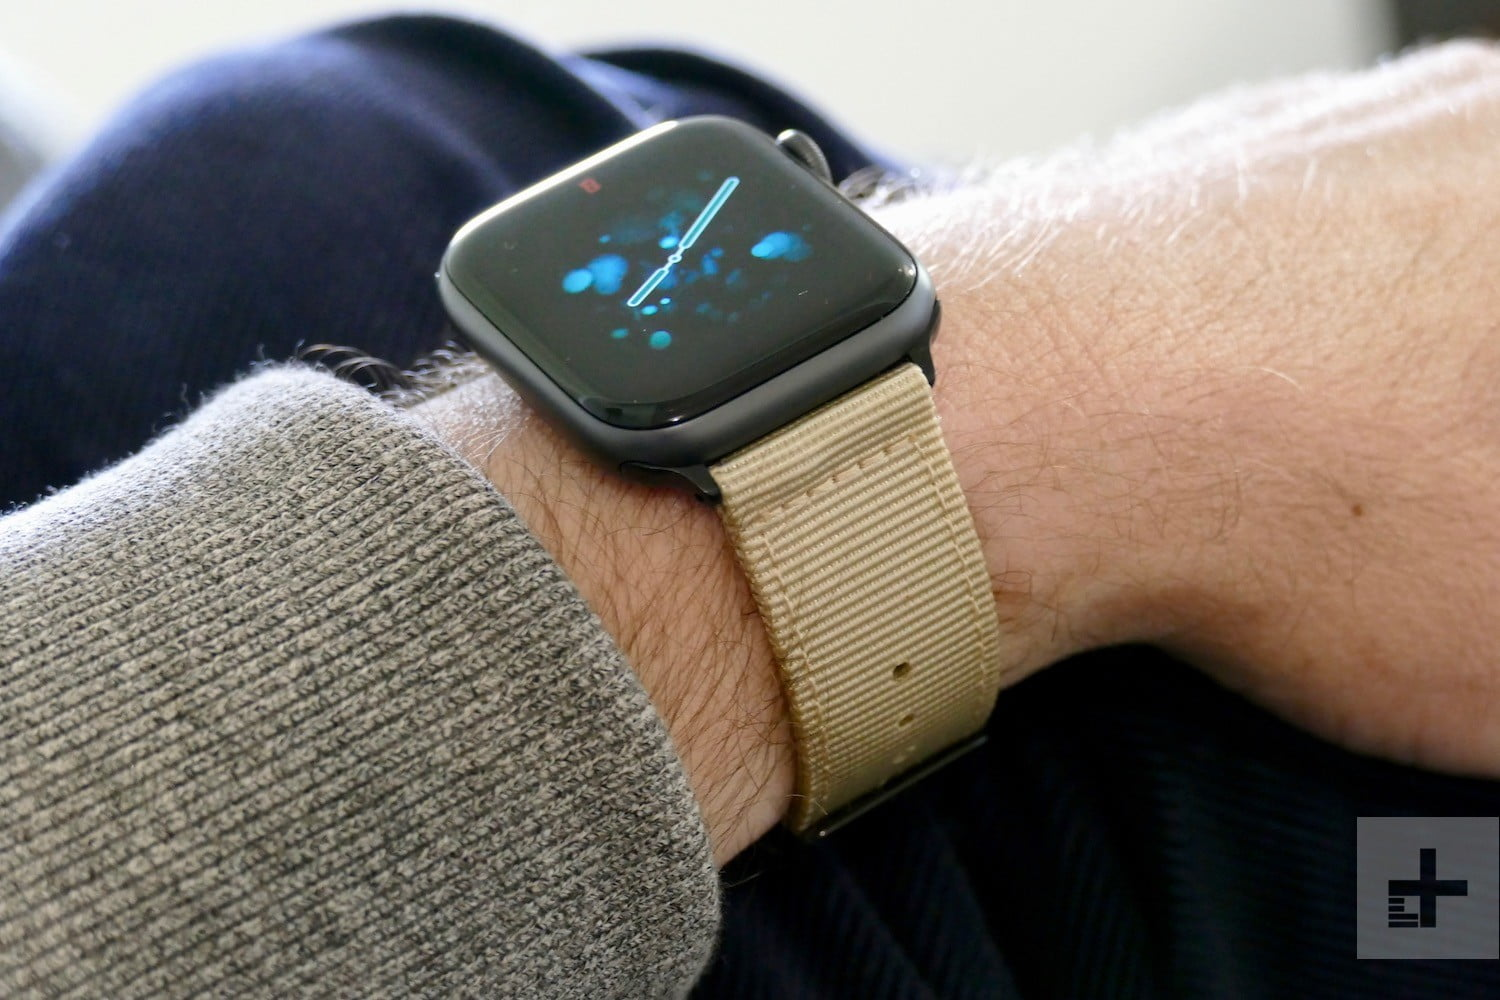 No Need for a New Apple Watch, the Old One is Still Amazing